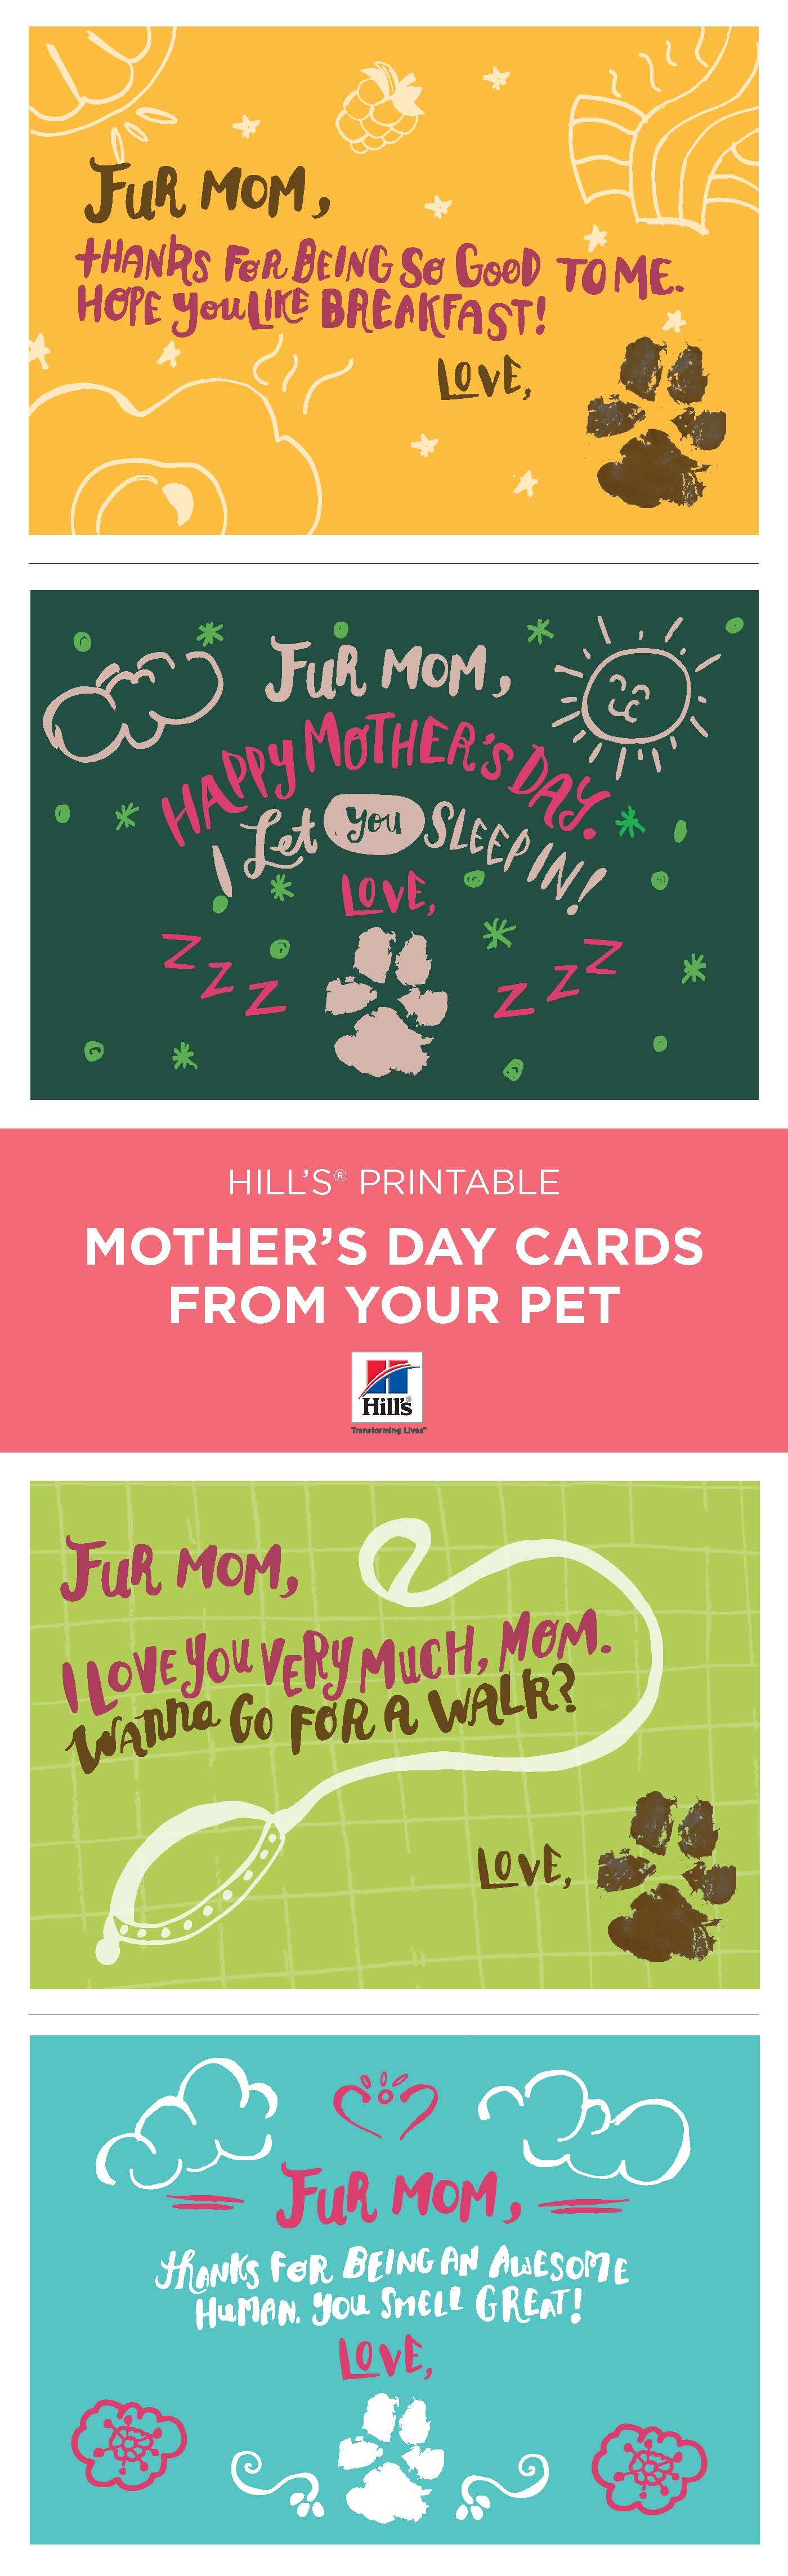 Mother's Day | Things We Love | Dog Mom, Mothers Day Cards, Dogs - Free Printable Mothers Day Card From Dog